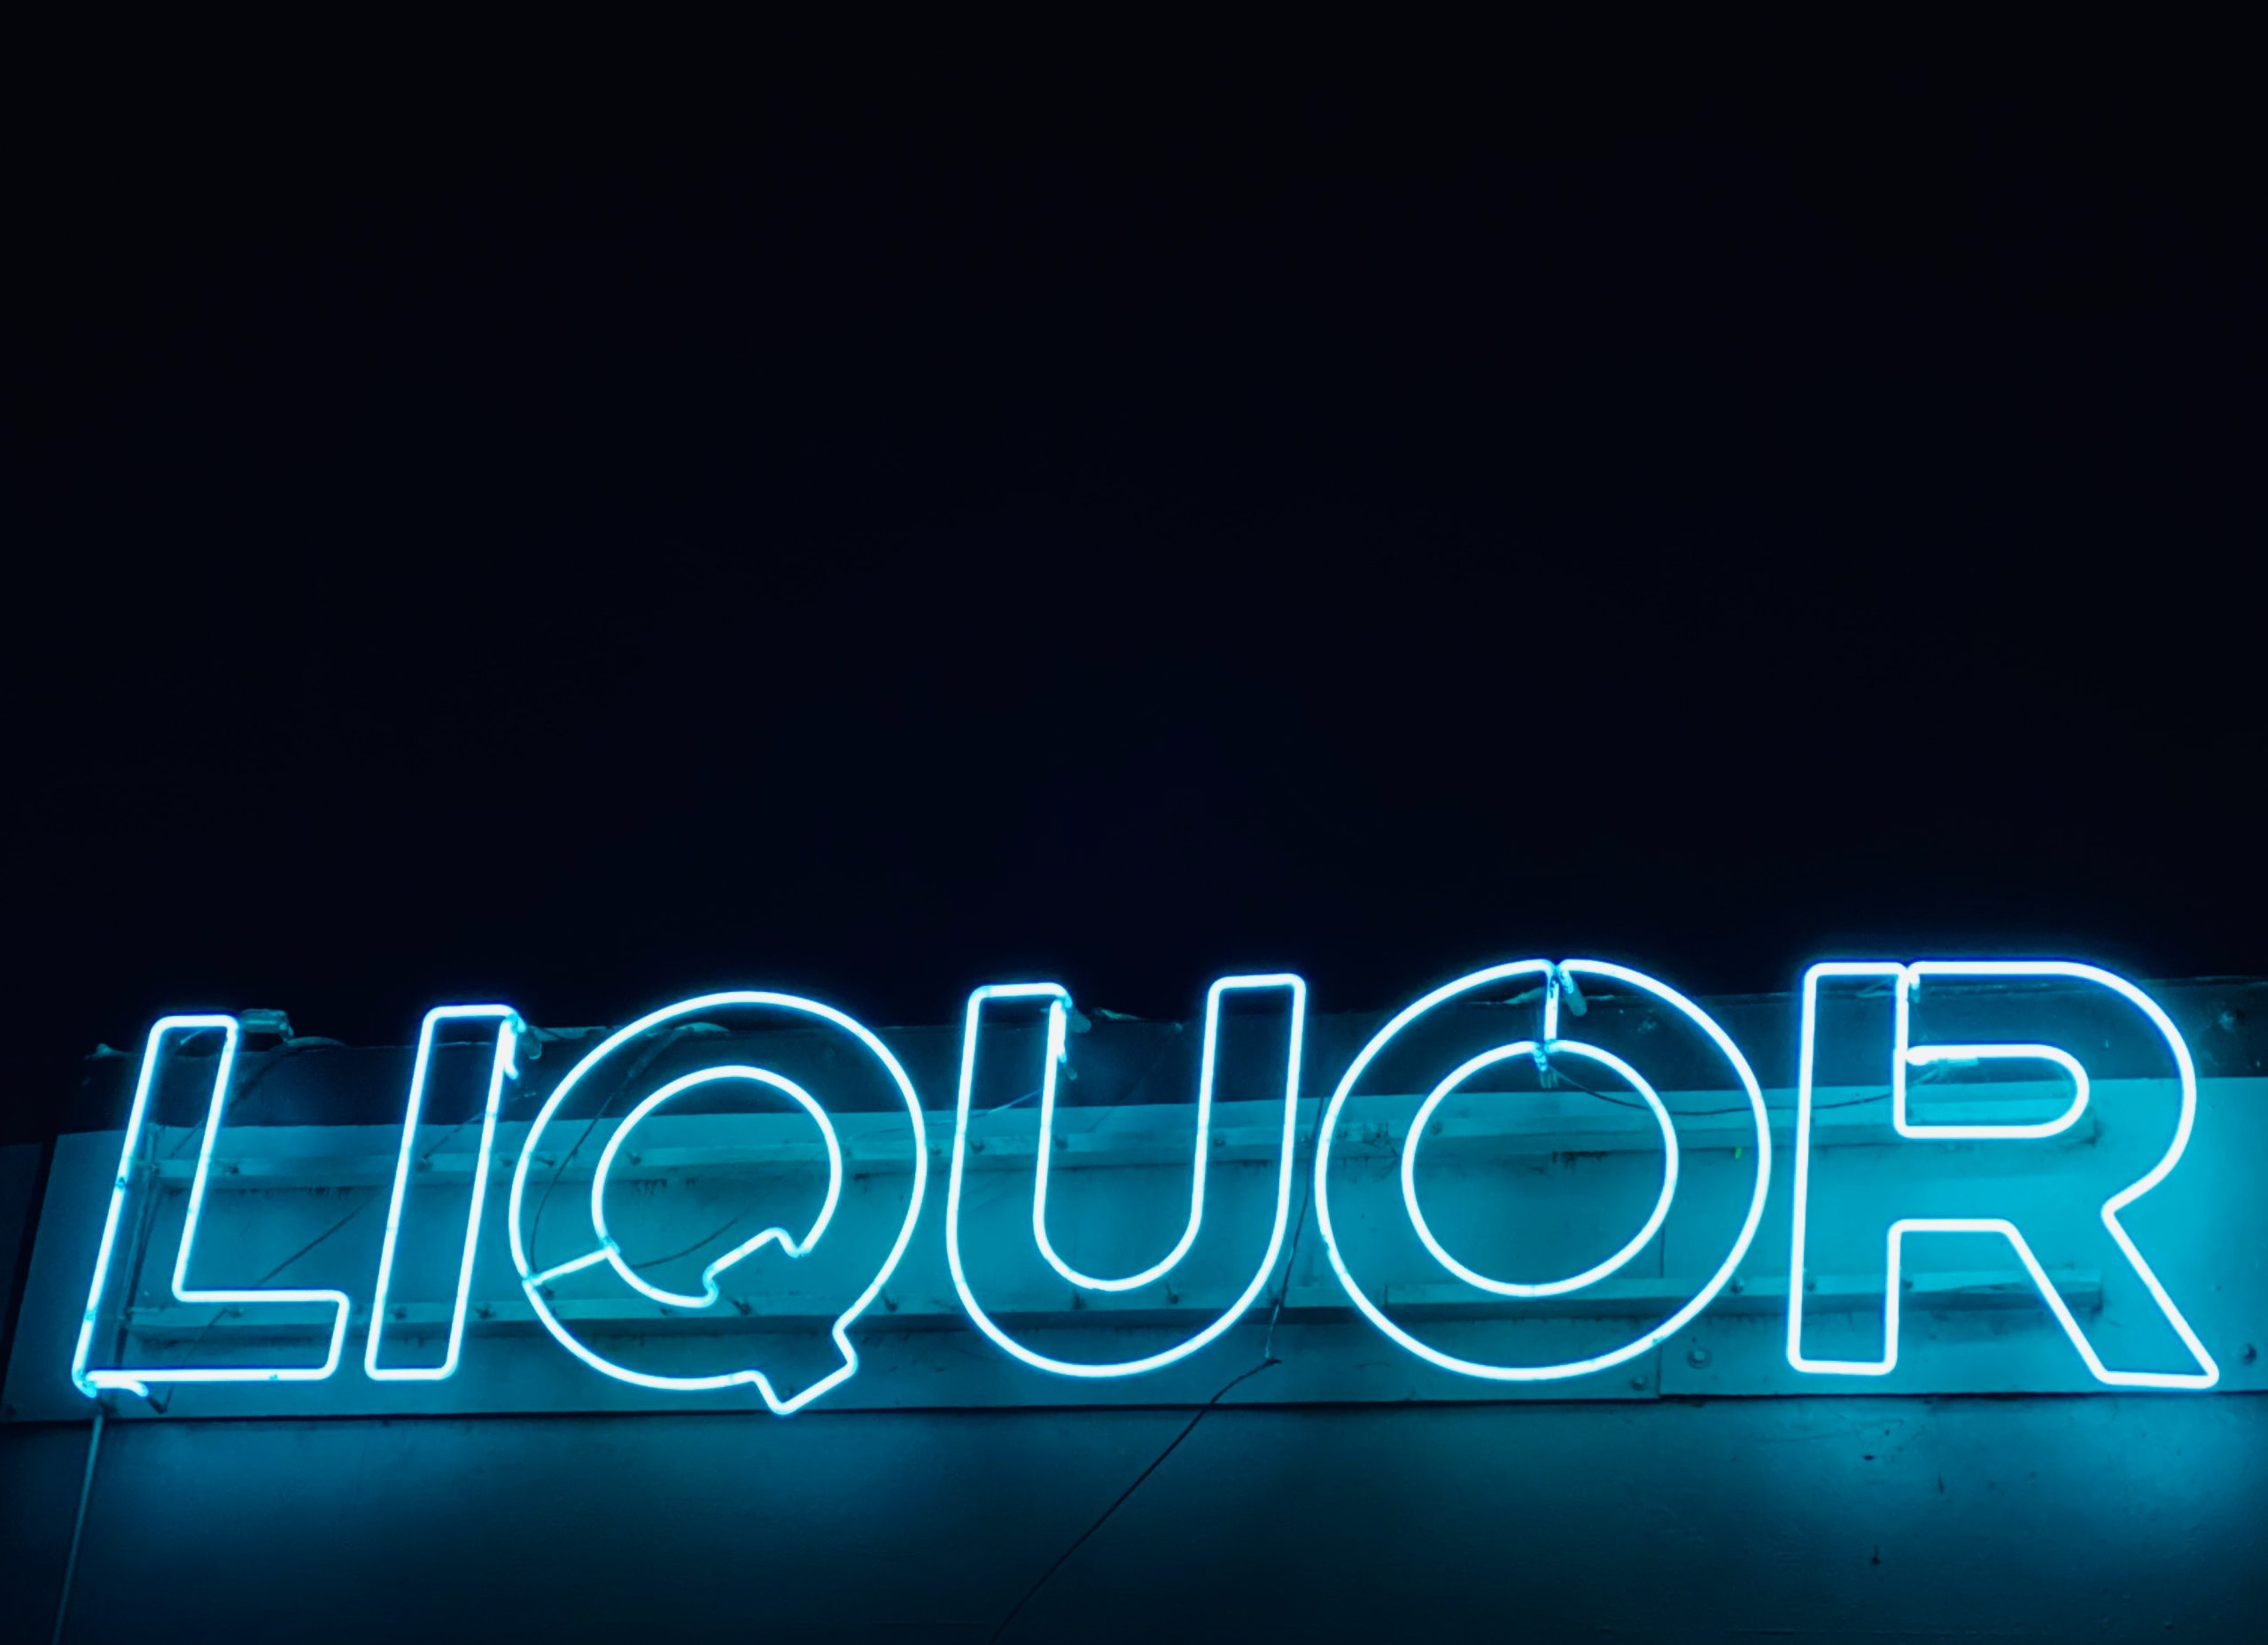 Alcohol marketing in the time of COVID-19